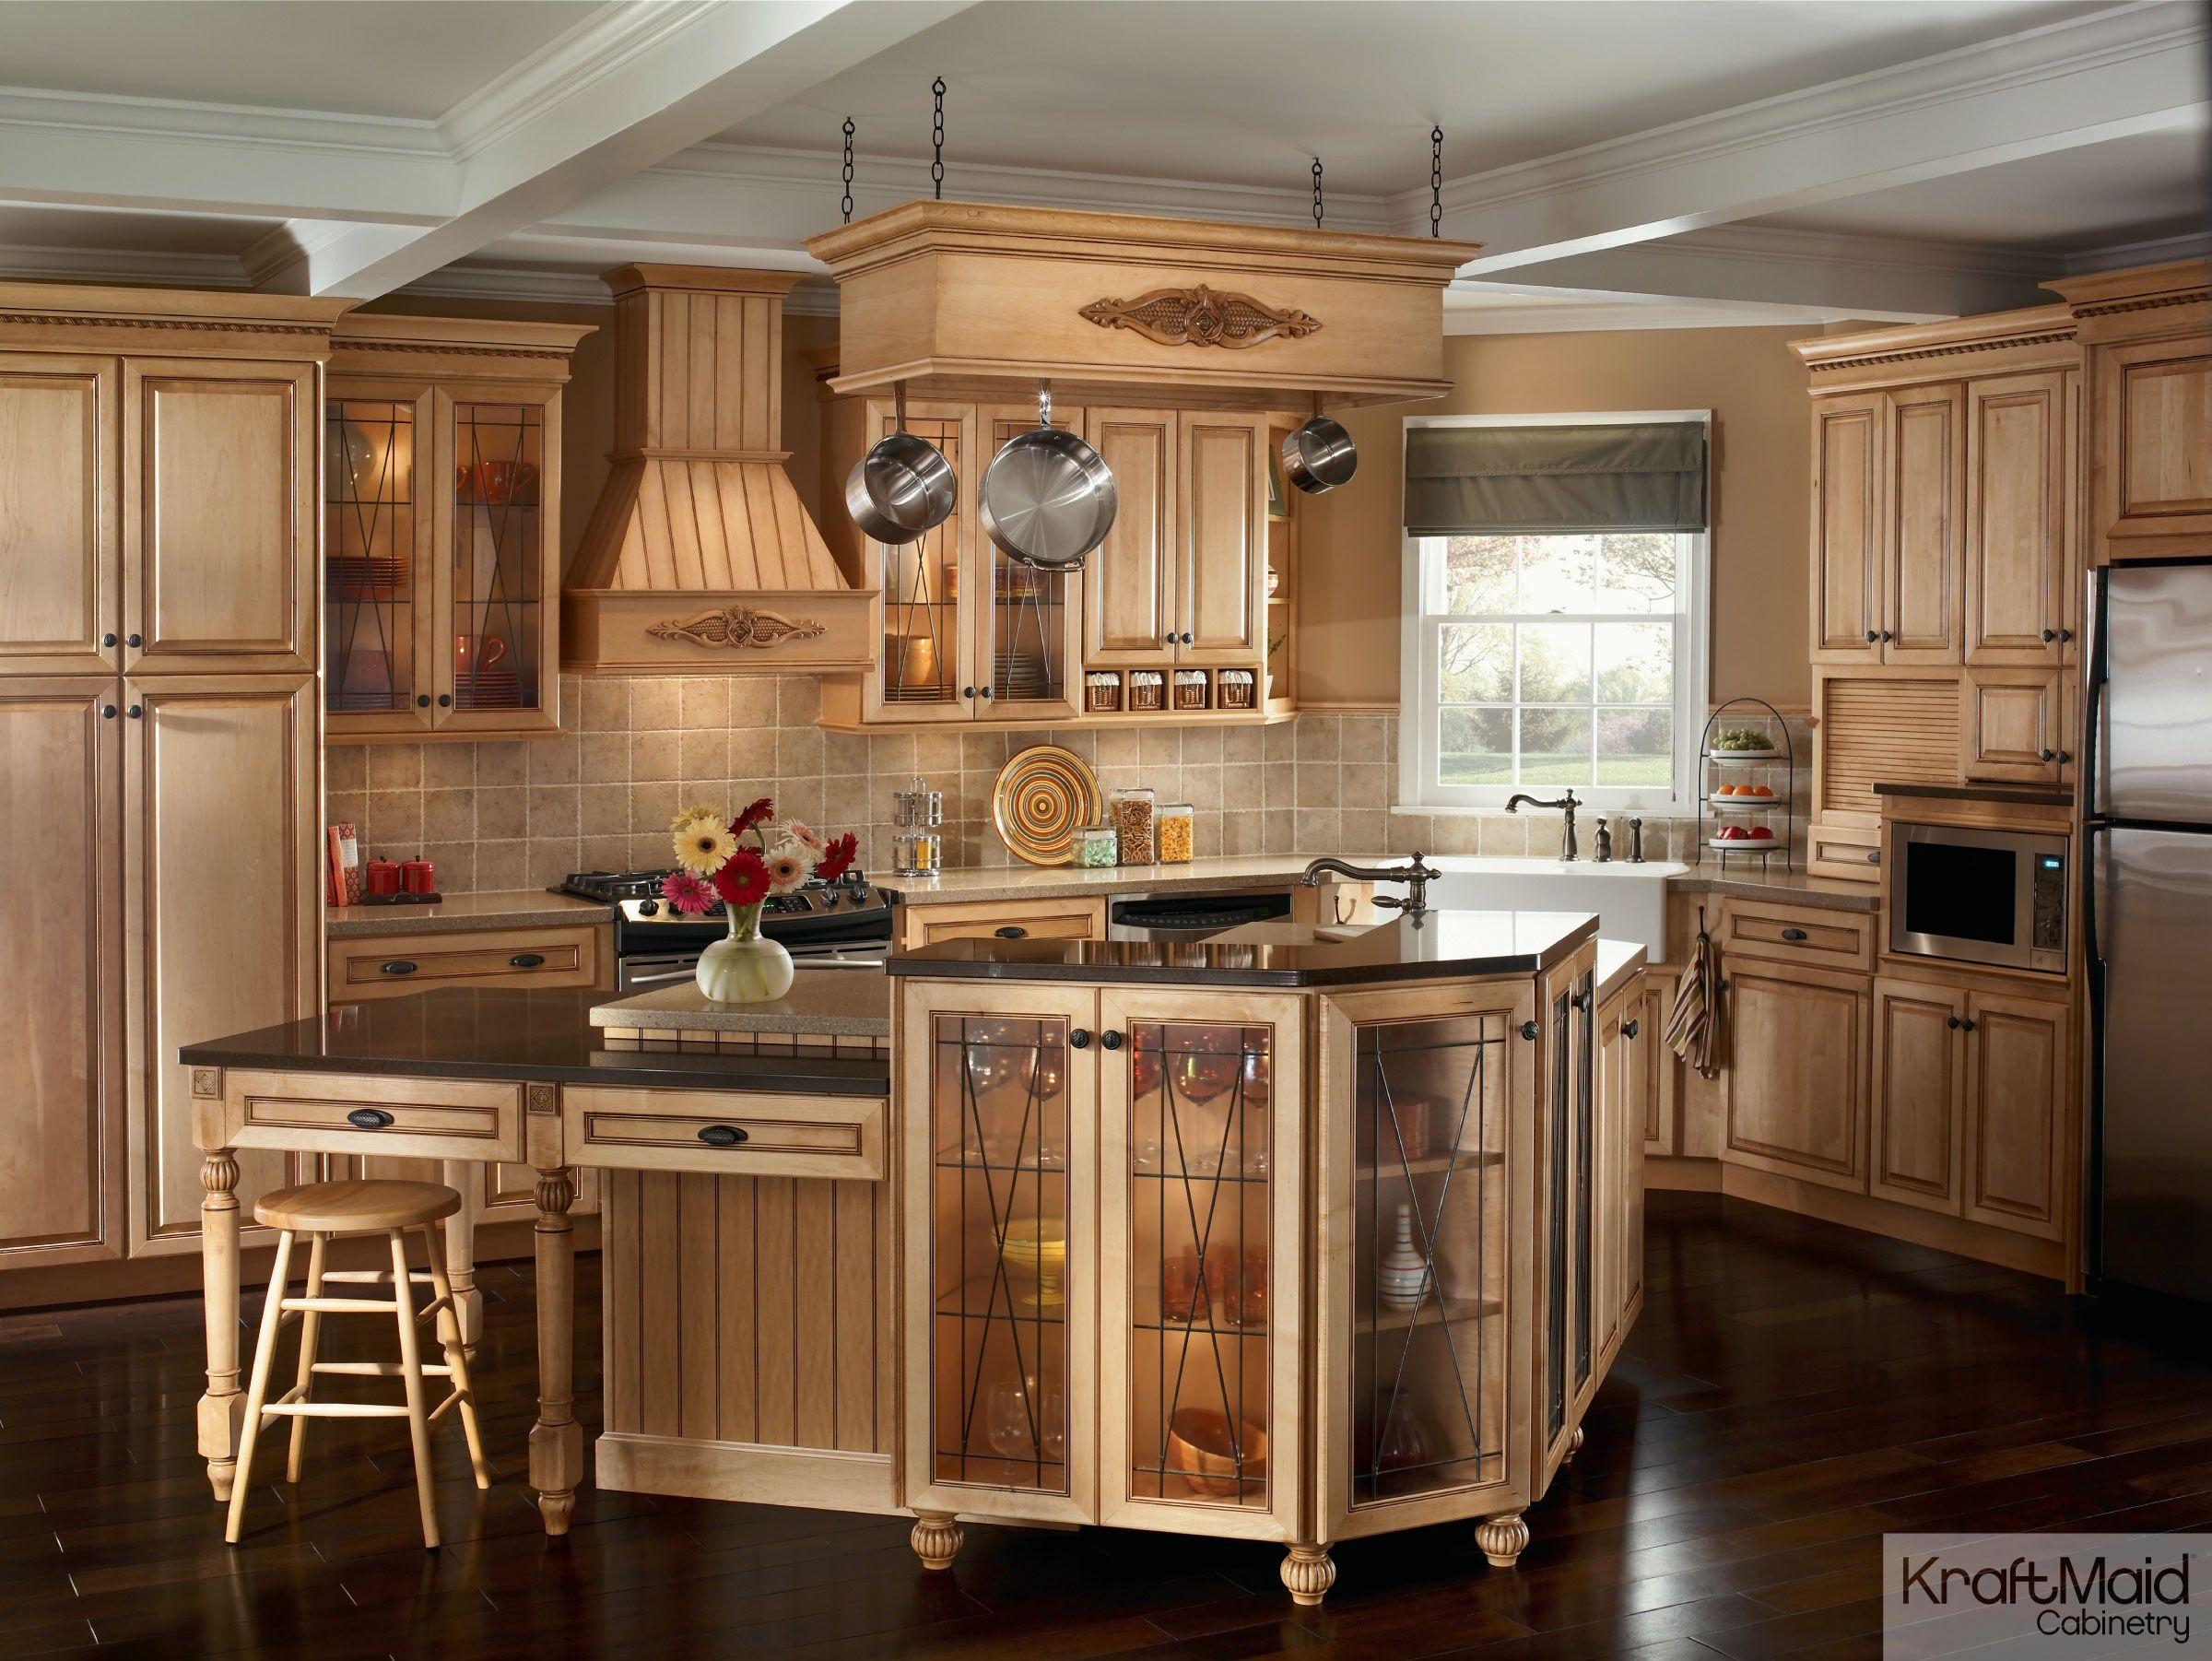 kitchens classically traditional kraftmaid kitchen cabinet prices This traditional kitchen with KraftMaid cabinetry and a multi tiered island provides a balance of